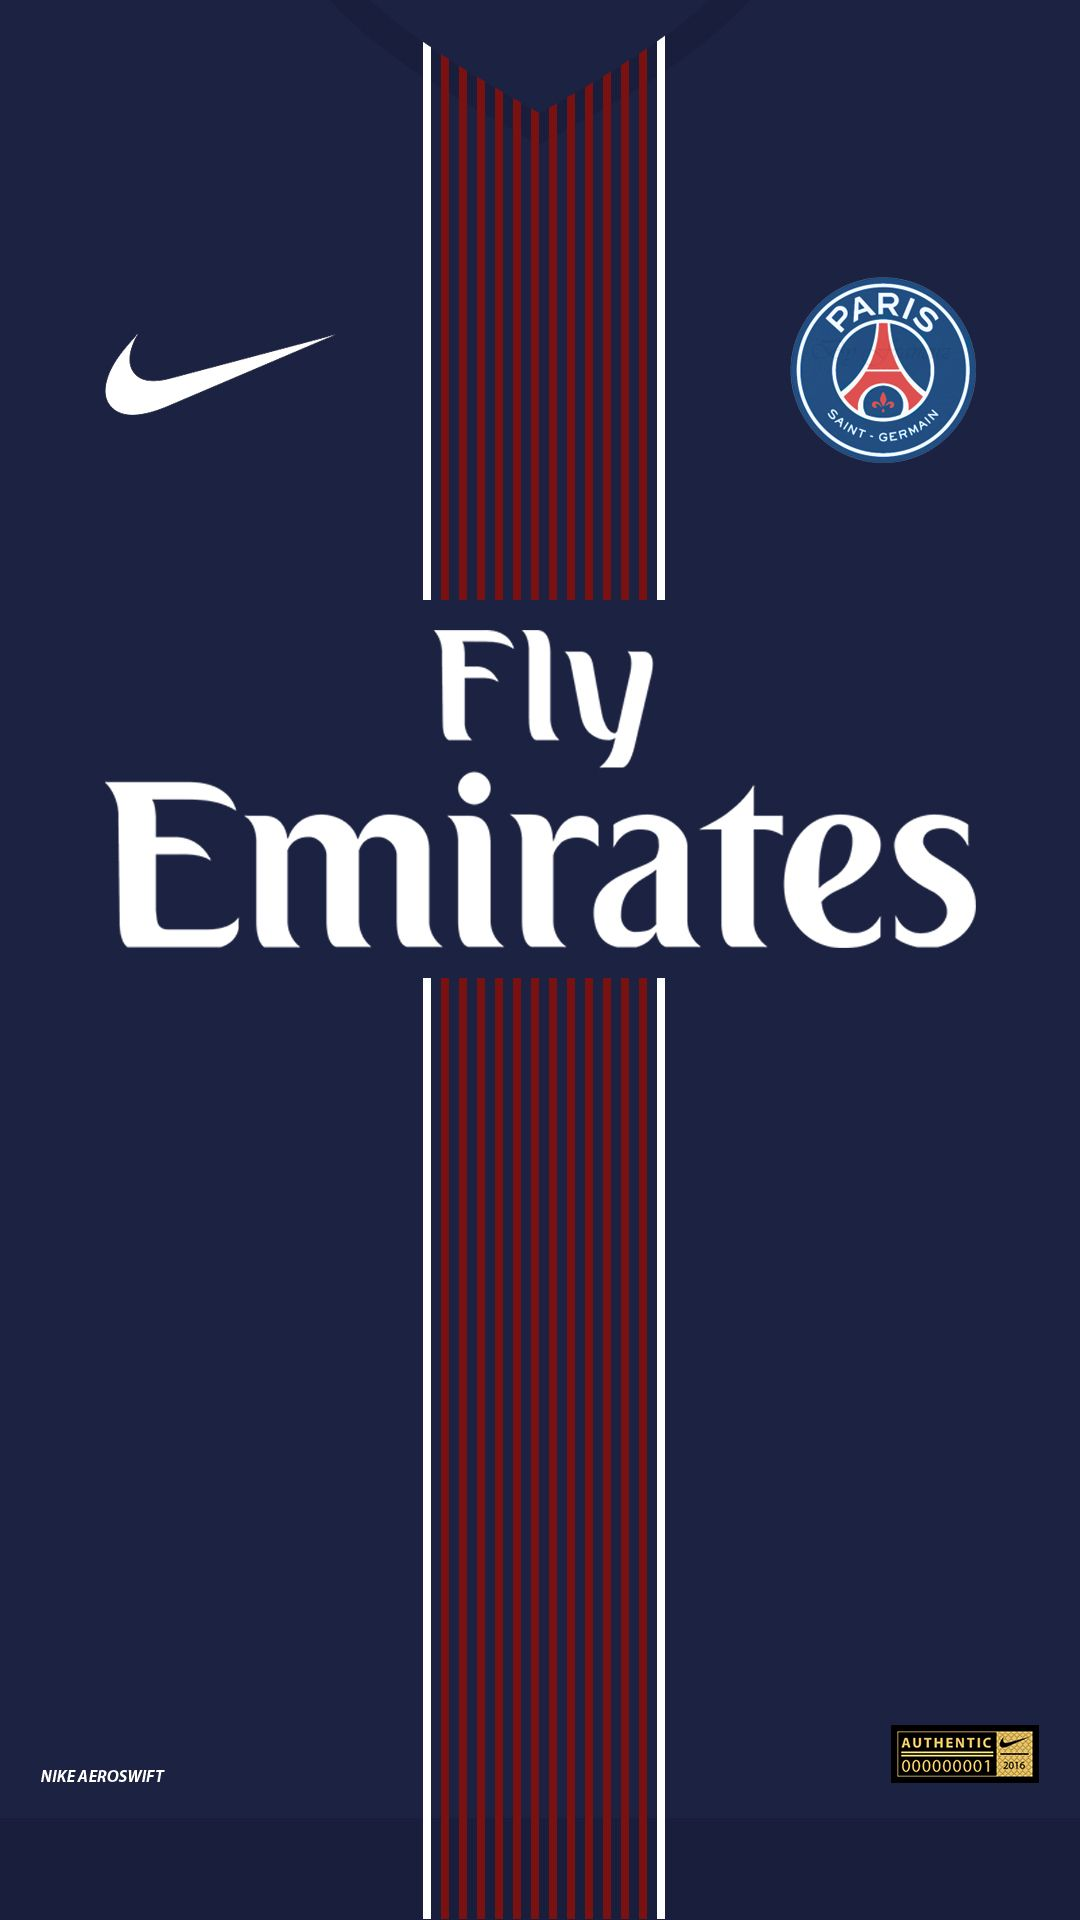 e95fcfb04e Brand New PSG HOME jersey 2016-17 coming out on May 23th 2016 ...